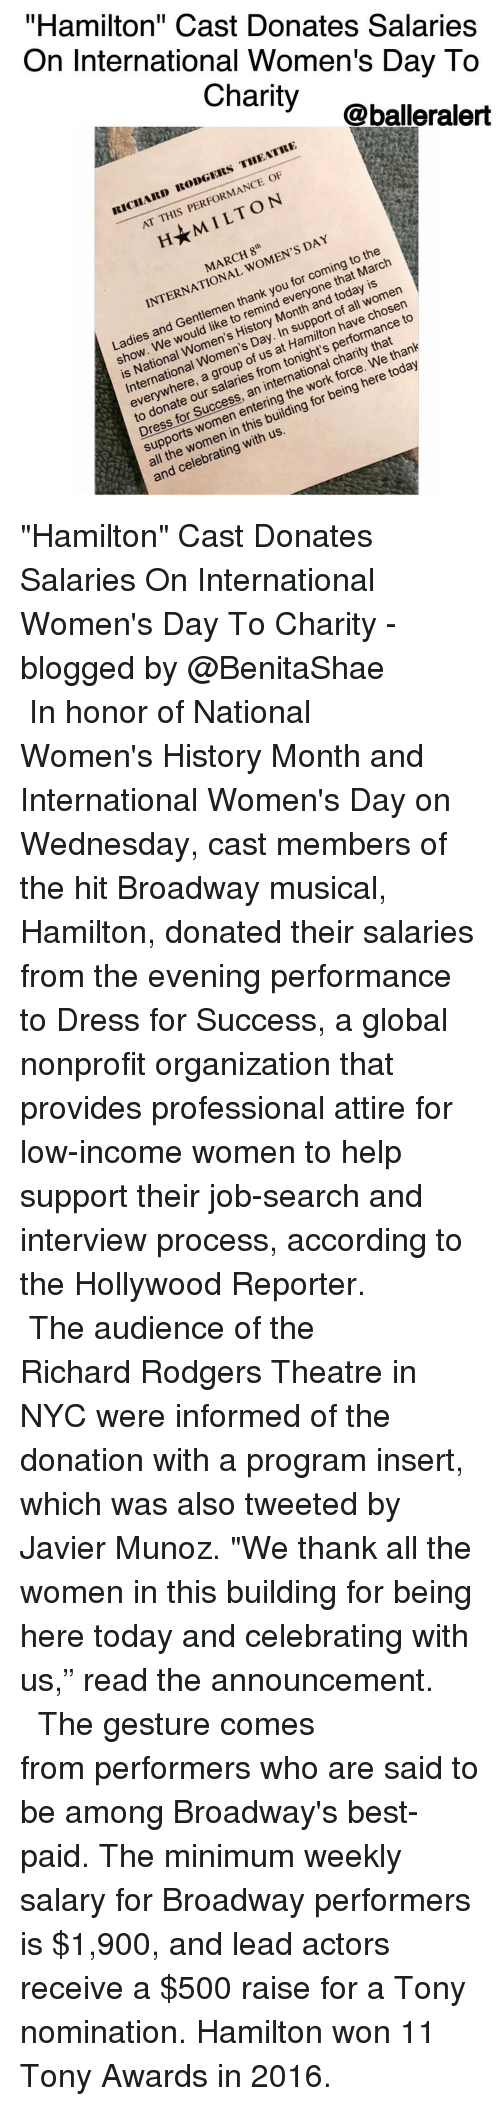 "Memes, Job Search, and 🤖: On International Women's Day To  ""Hamilton"" Cast Donates Salaries  Charity  @balleralert  IICIIARD RODGERS THEATRE  AT THIS PERFORMANCE OF  H★M I LTON  MARCH 8th  INTERNATIONAL WOMEN'S DAY  ONAL  Ladies and Gentlemen thank you for coming to the  to arch  entlera to ren/ Mom nort oave cho2to  show. We would like to remind everyone that March  suld n High. In sUpilton nforma  is National Women's History Month and today is  International Women's Day. In support of all women  Day  everywhere, a group of us at Hamilton have chosen  to donate our salaries from tonight's performance to  Dress for Success, an international charity that  supports women entering the work force. We thank  all the women in this building for being here today  and celebrating with us. ""Hamilton"" Cast Donates Salaries On International Women's Day To Charity -blogged by @BenitaShae ⠀⠀⠀⠀⠀⠀⠀⠀⠀ ⠀⠀⠀⠀⠀⠀⠀⠀⠀ In honor of National Women's History Month and International Women's Day on Wednesday, cast members of the hit Broadway musical, Hamilton, donated their salaries from the evening performance to Dress for Success, a global nonprofit organization that provides professional attire for low-income women to help support their job-search and interview process, according to the Hollywood Reporter. ⠀⠀⠀⠀⠀⠀⠀⠀⠀ ⠀⠀⠀⠀⠀⠀⠀⠀⠀ The audience of the Richard Rodgers Theatre in NYC were informed of the donation with a program insert, which was also tweeted by Javier Munoz. ""We thank all the women in this building for being here today and celebrating with us,"" read the announcement. ⠀⠀⠀⠀⠀⠀⠀⠀⠀ ⠀⠀⠀⠀⠀⠀⠀⠀⠀ The gesture comes from performers who are said to be among Broadway's best-paid. The minimum weekly salary for Broadway performers is $1,900, and lead actors receive a $500 raise for a Tony nomination. Hamilton won 11 Tony Awards in 2016."